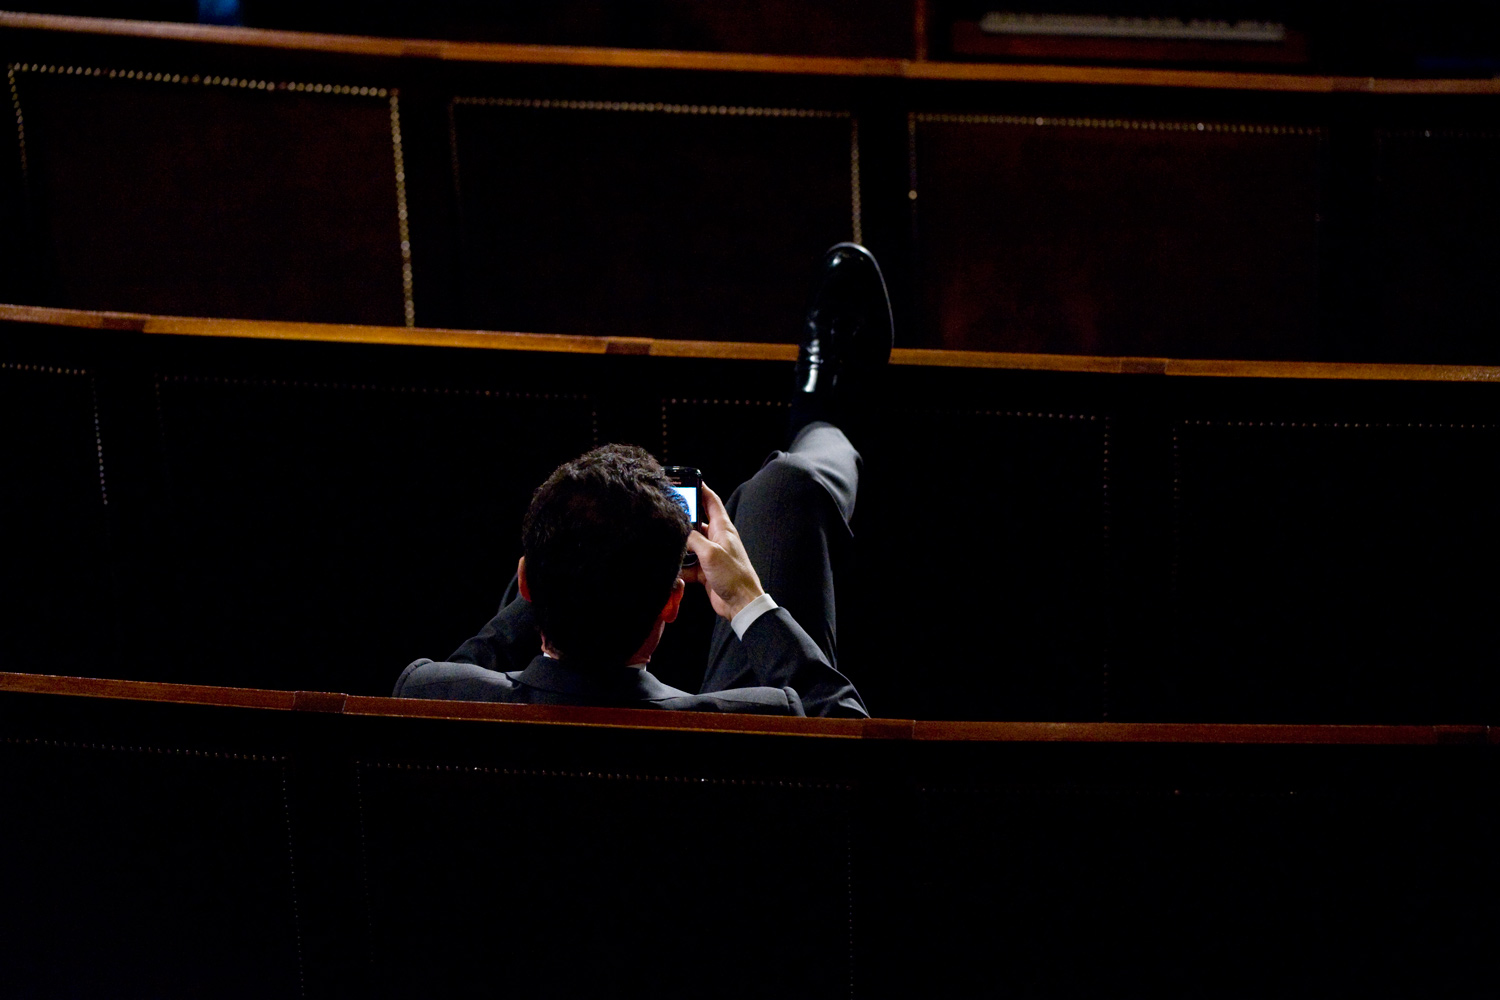 January 25, 2011. Rep. Anthony Weiner, D-N.Y., works on his Blackberry after President Barack Obama's State of the Union address in the House Chamber.  Many Senators and Representatives from opposite sides of the aisle chose to sit with each other to help alleviate partisanship.